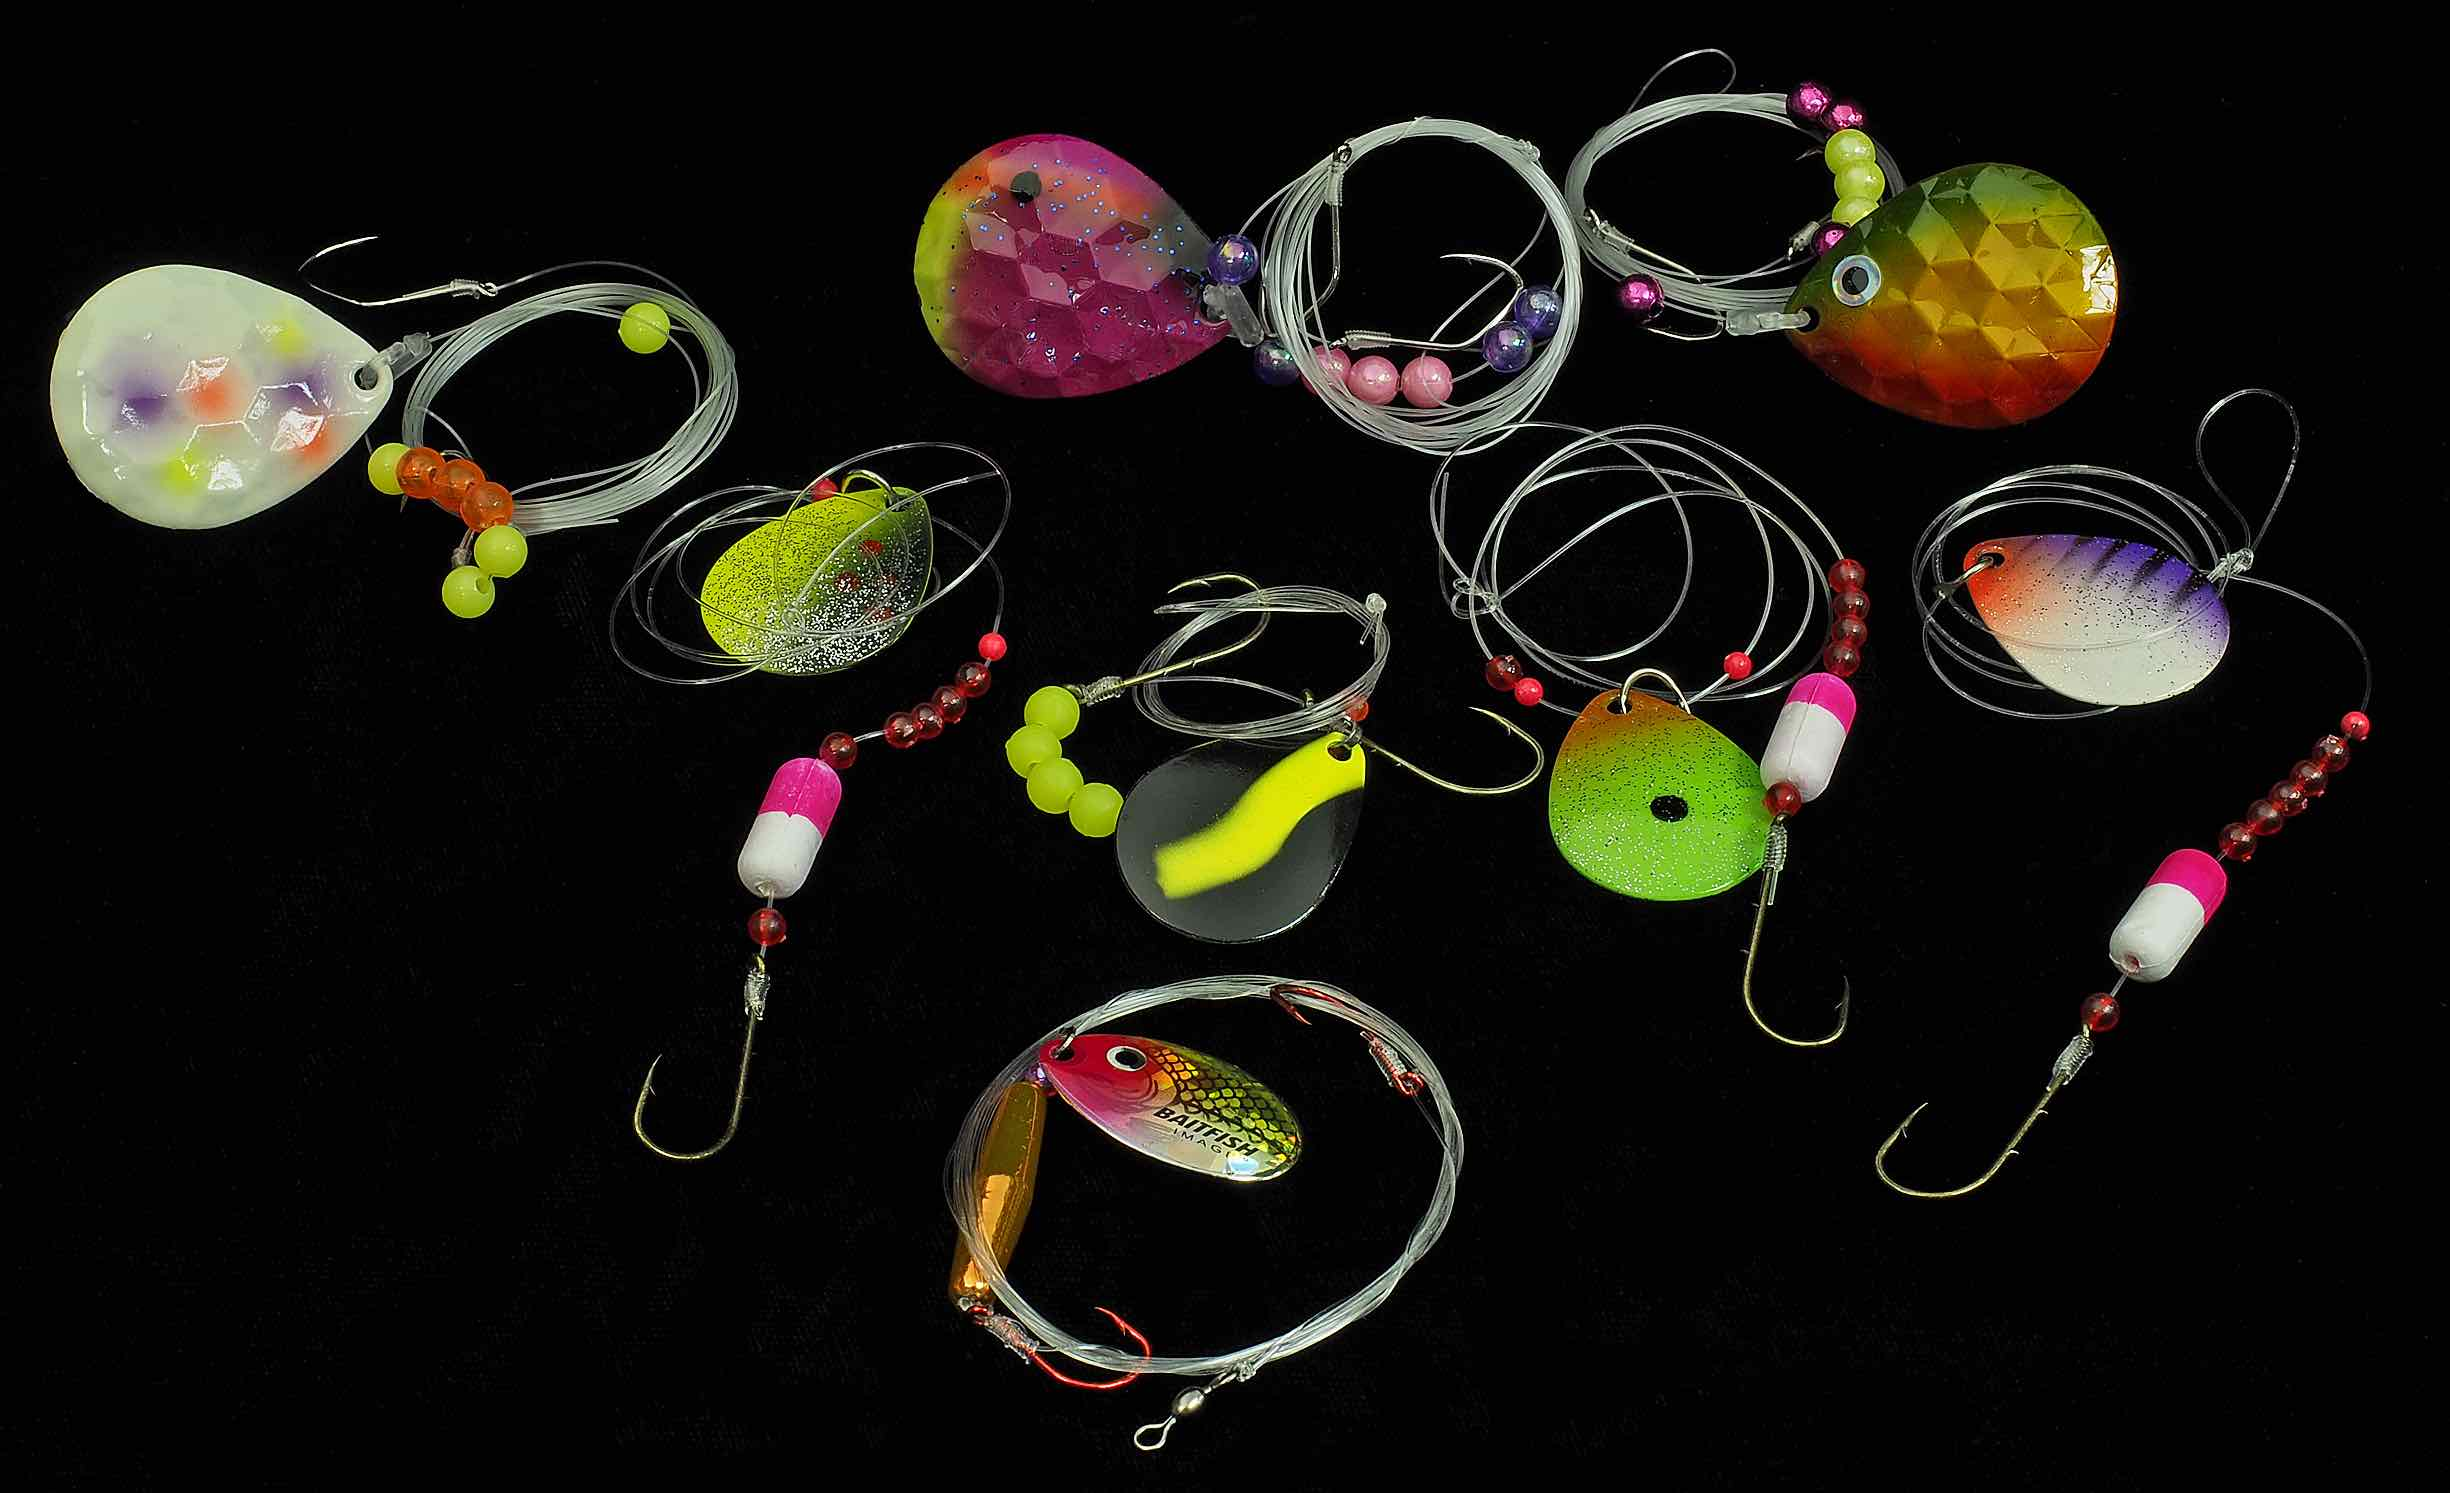 Walleye Crawler Worm Harness